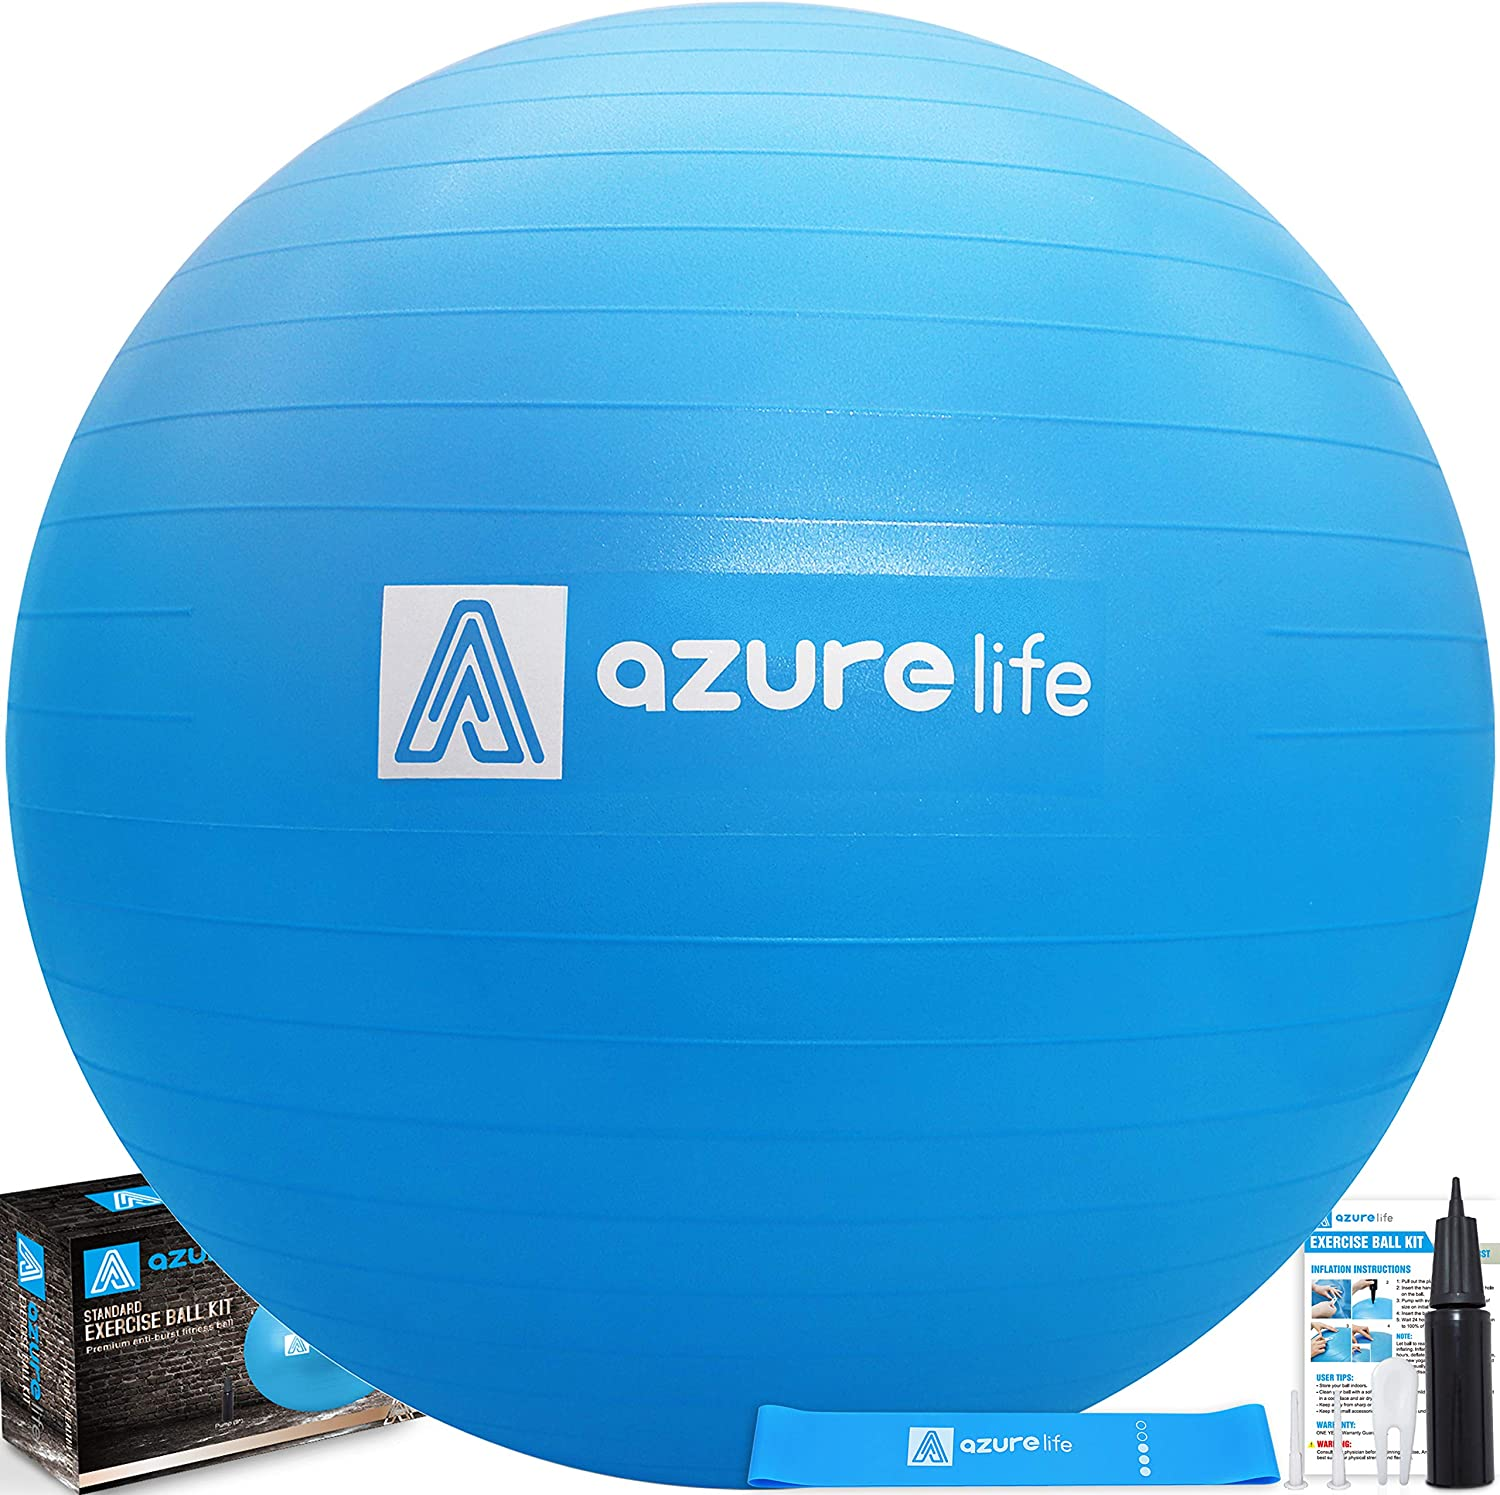 A AZURELIFE Professional Grade 58-65cm Exercise Ball, Anti-Burst Non-Slip Stability Balance Ball with Quick Pump Included, Perfect for Birthing, Yoga, Pilates Desk Chairs, Therapy